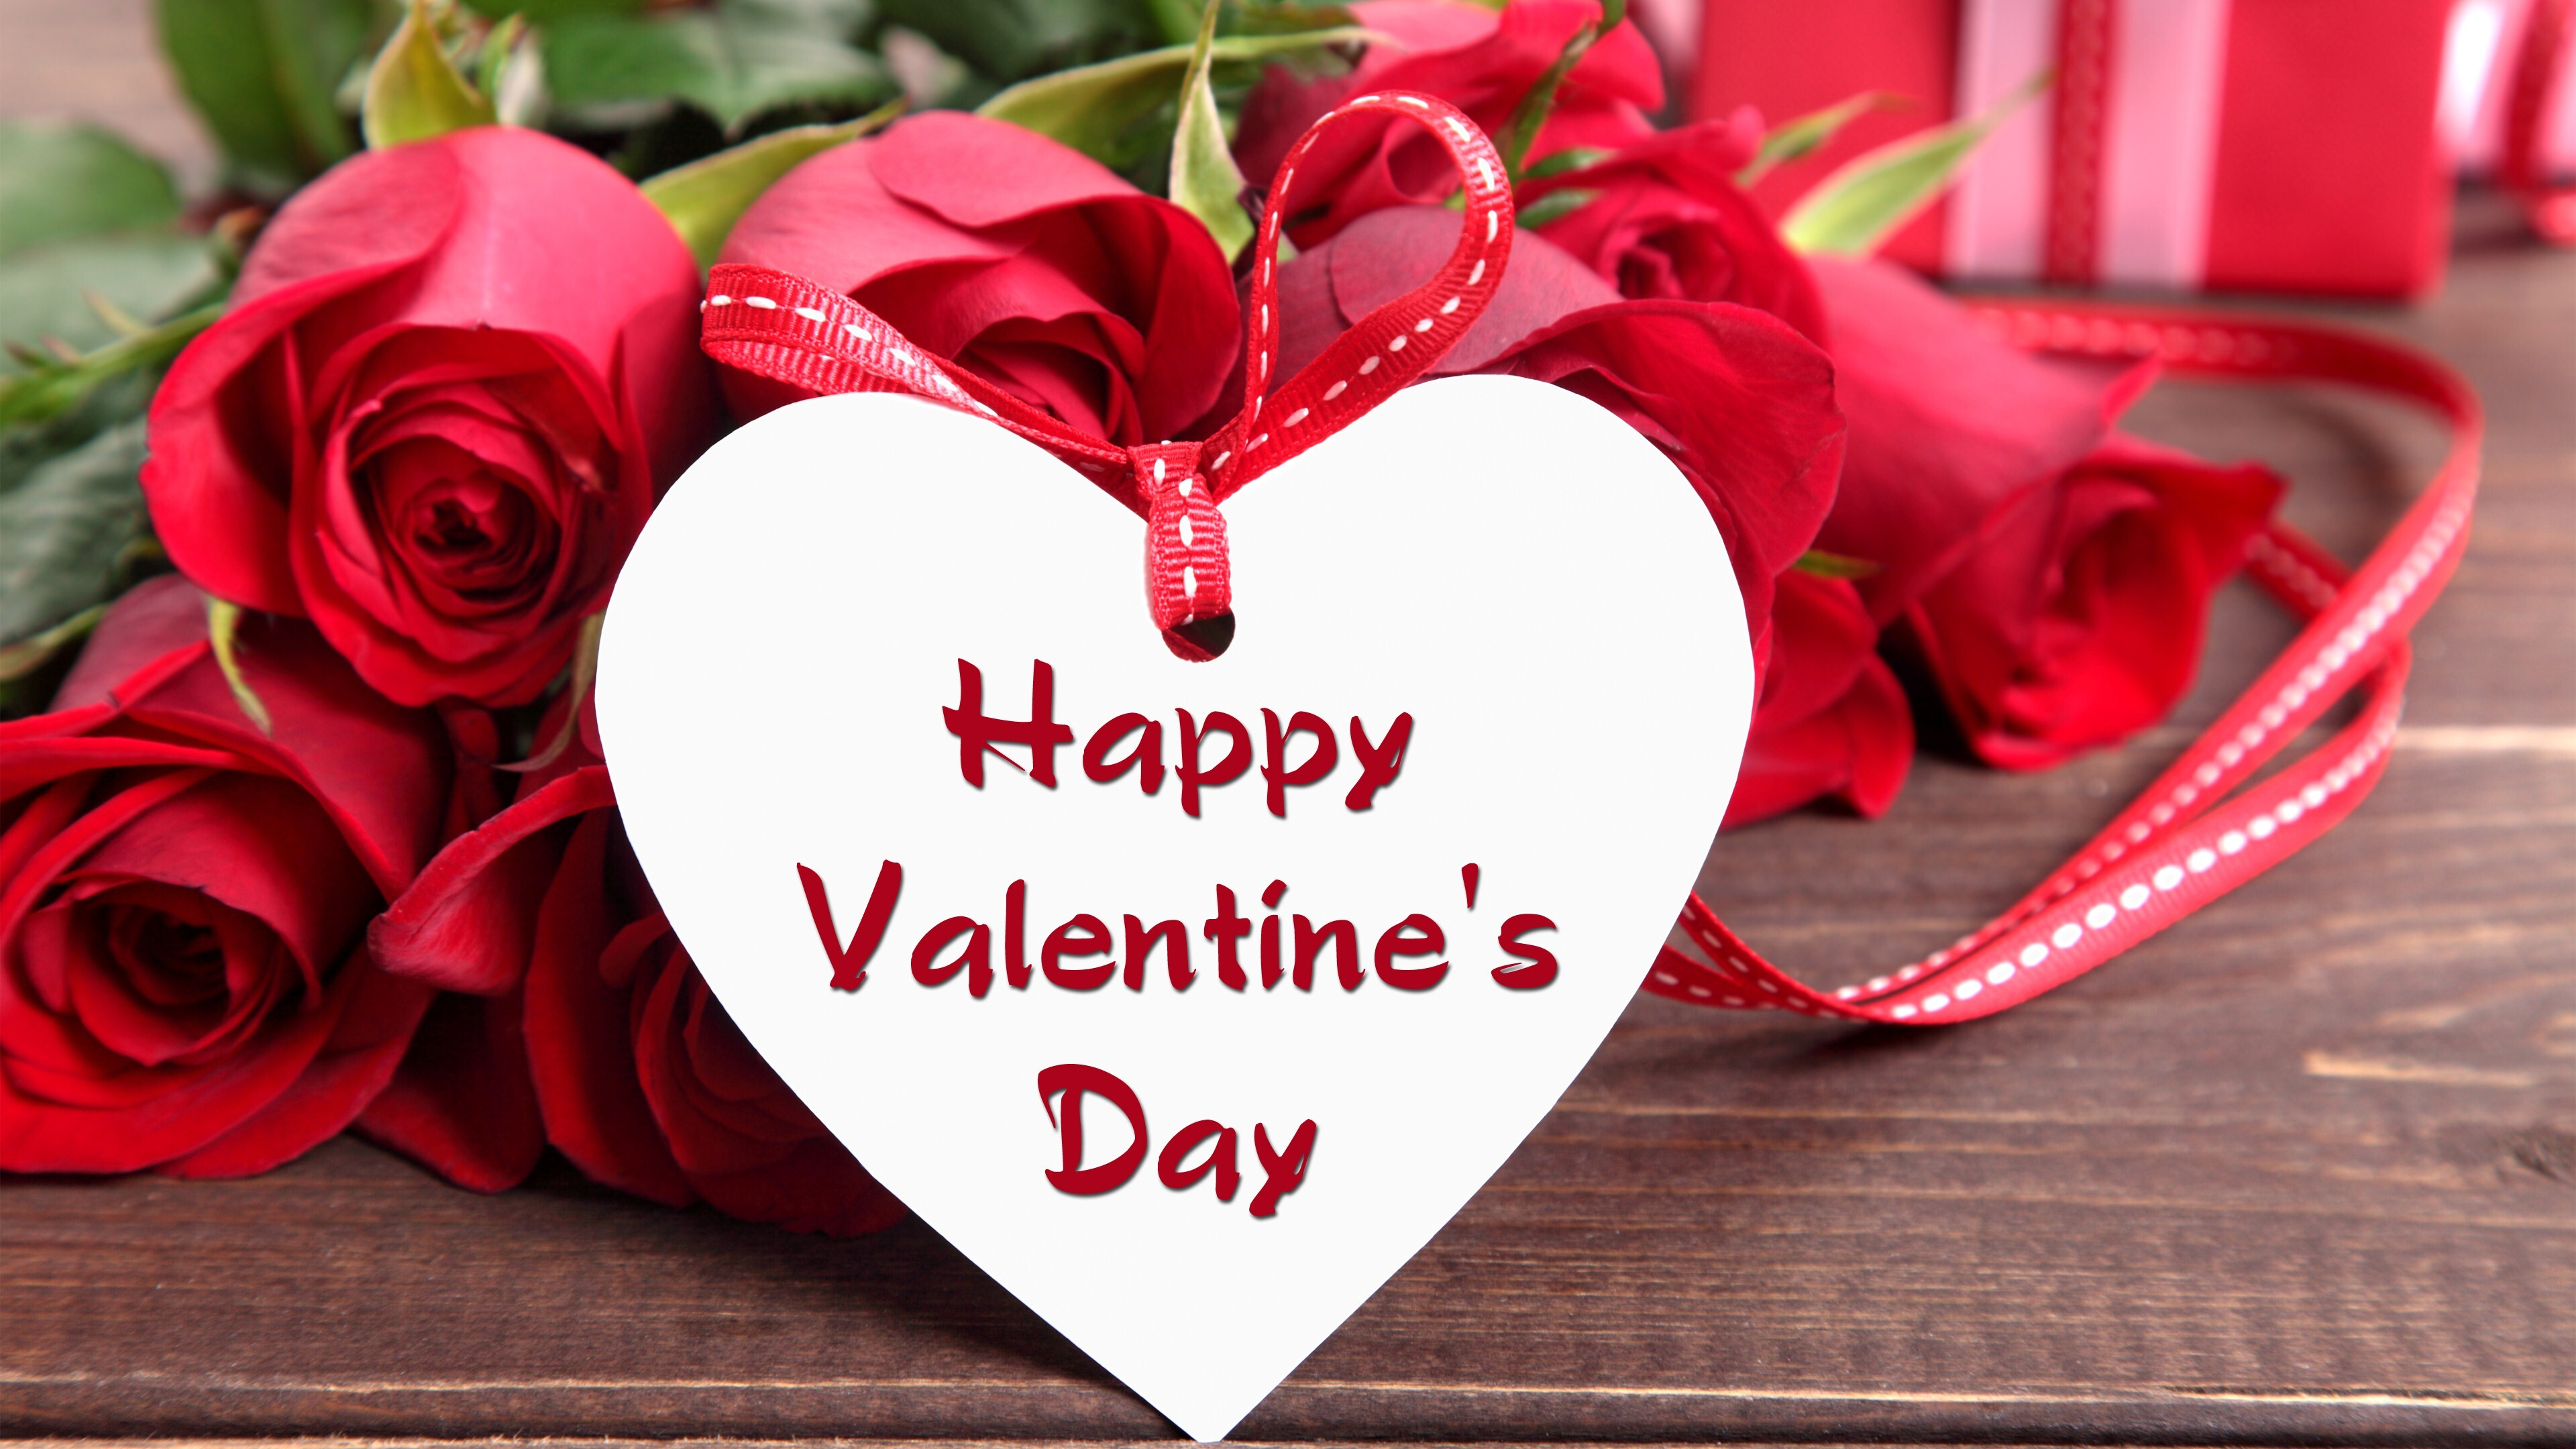 Valentines Day Hd Wallpaper Background Hd Wallpapers